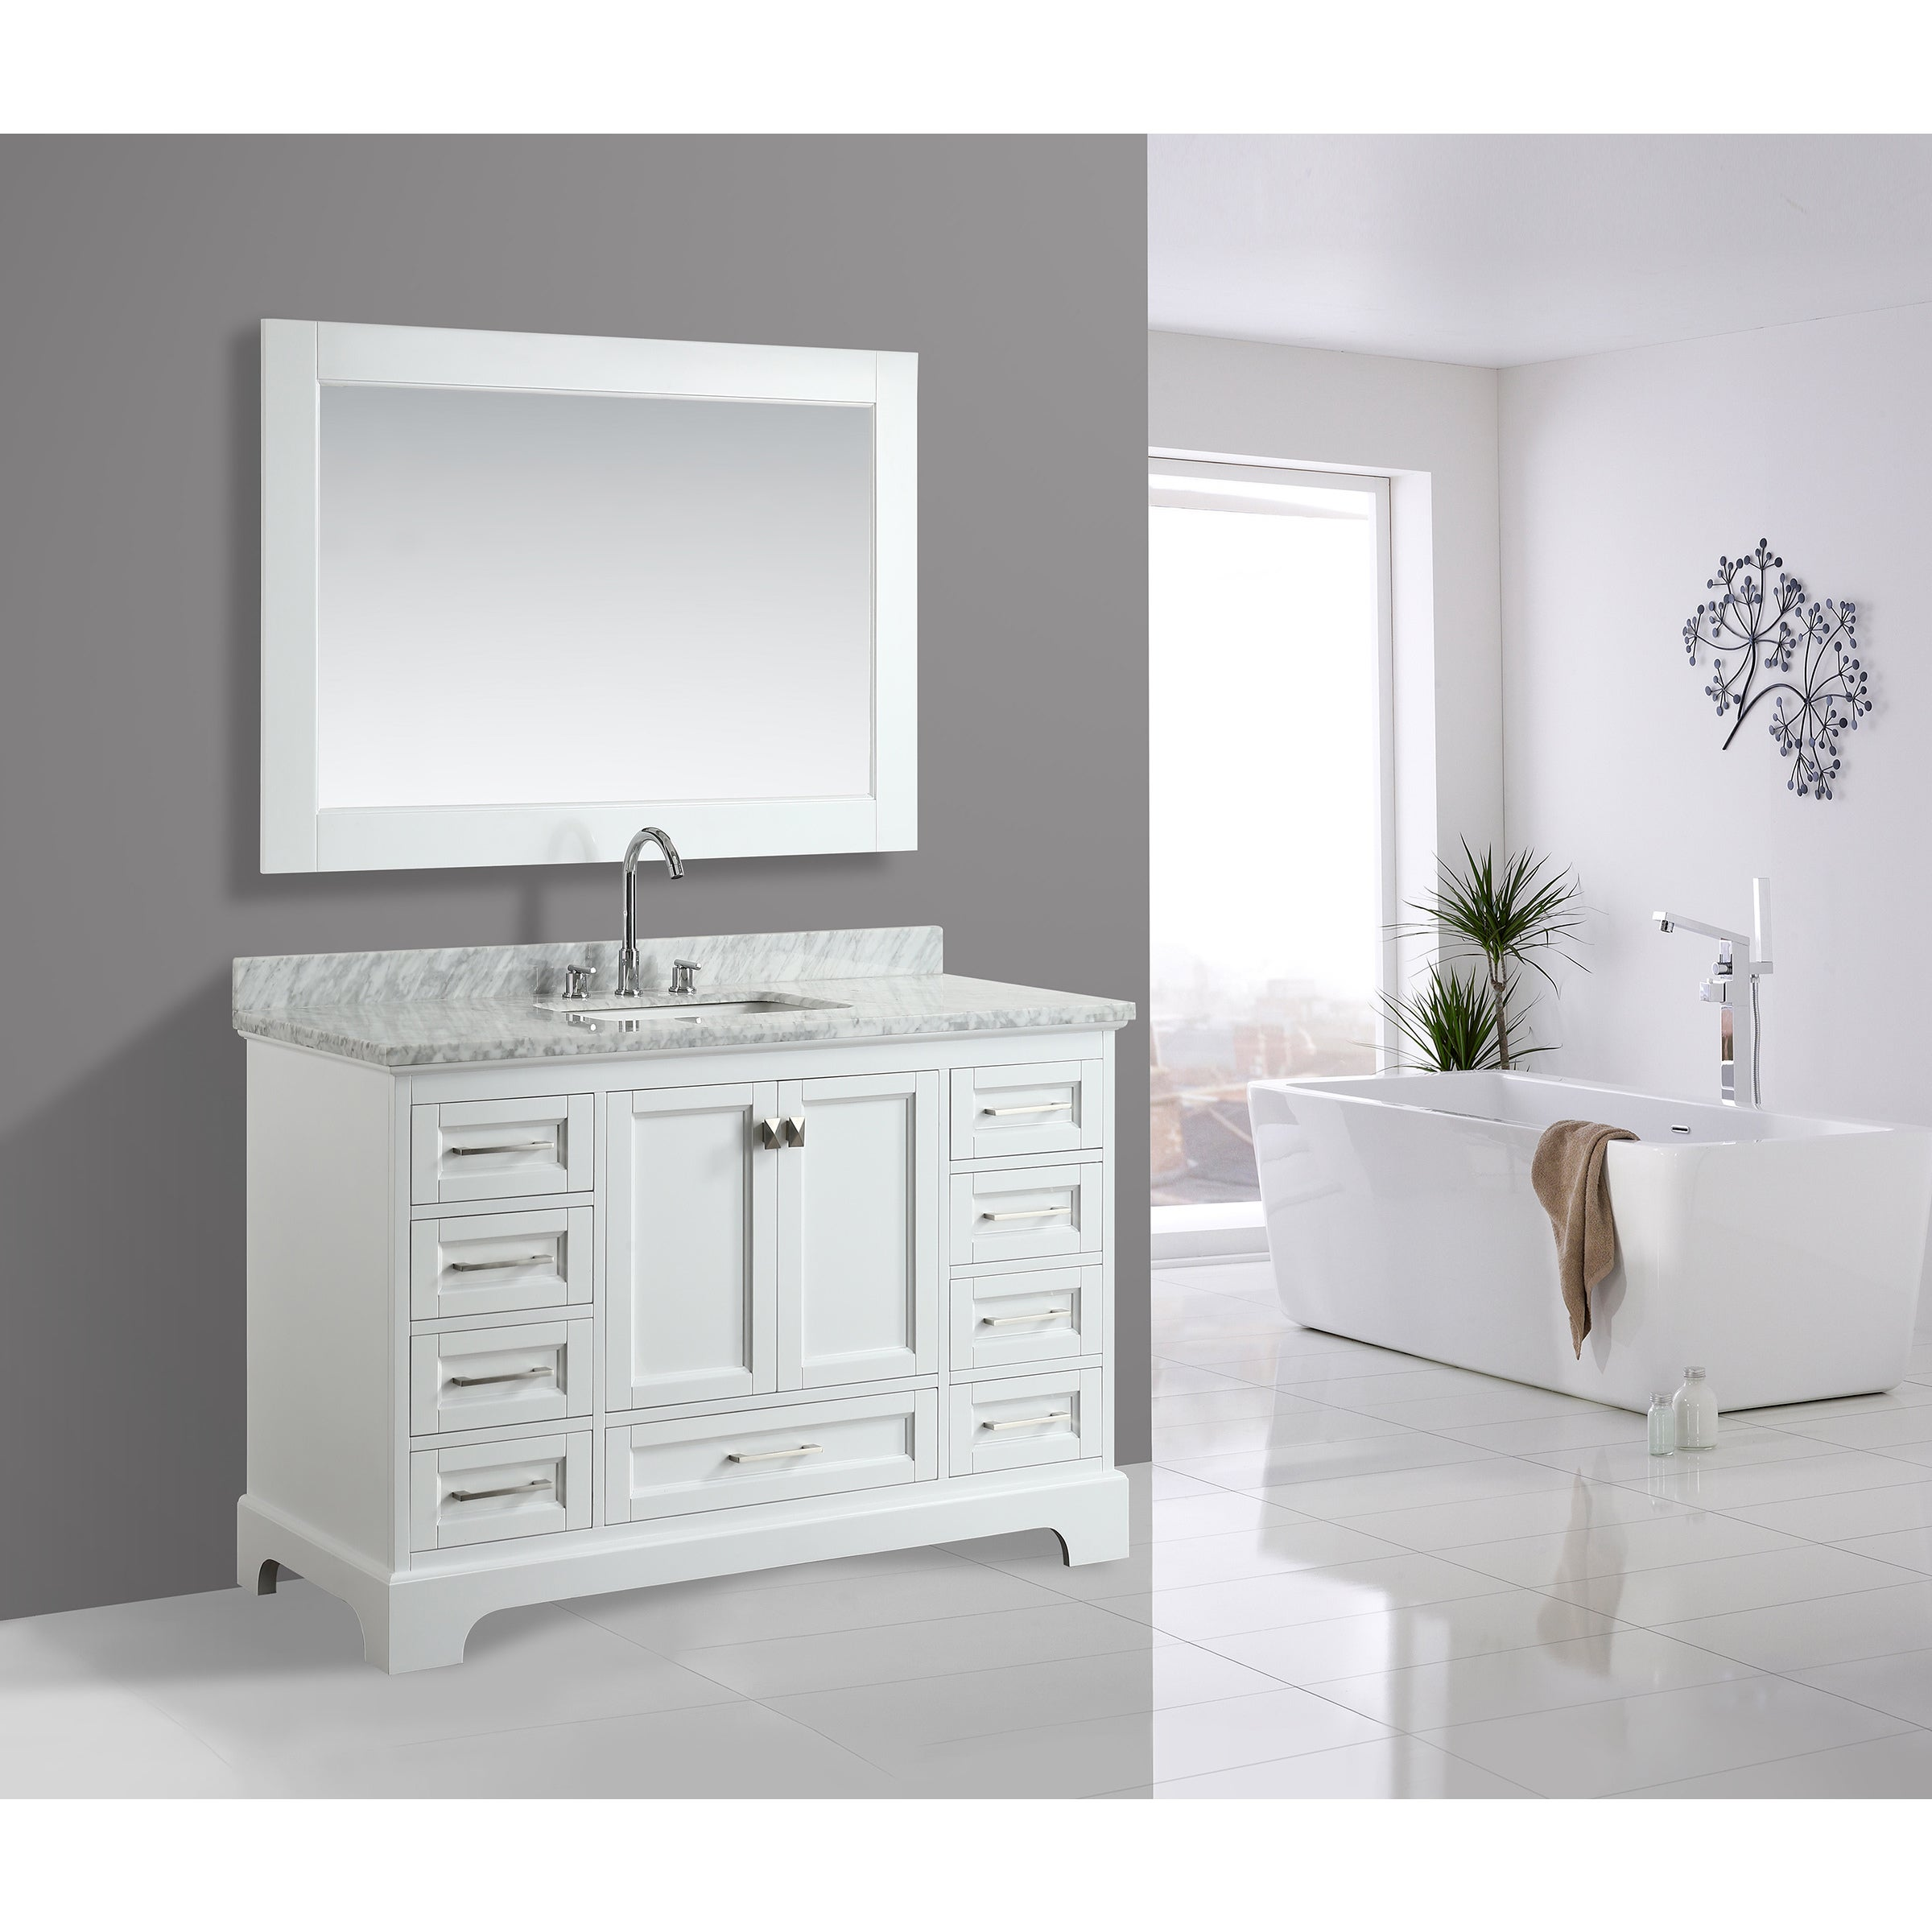 Omega White 54 Inch Single Sink Mirror Vanity Set Free Shipping Today 15293919